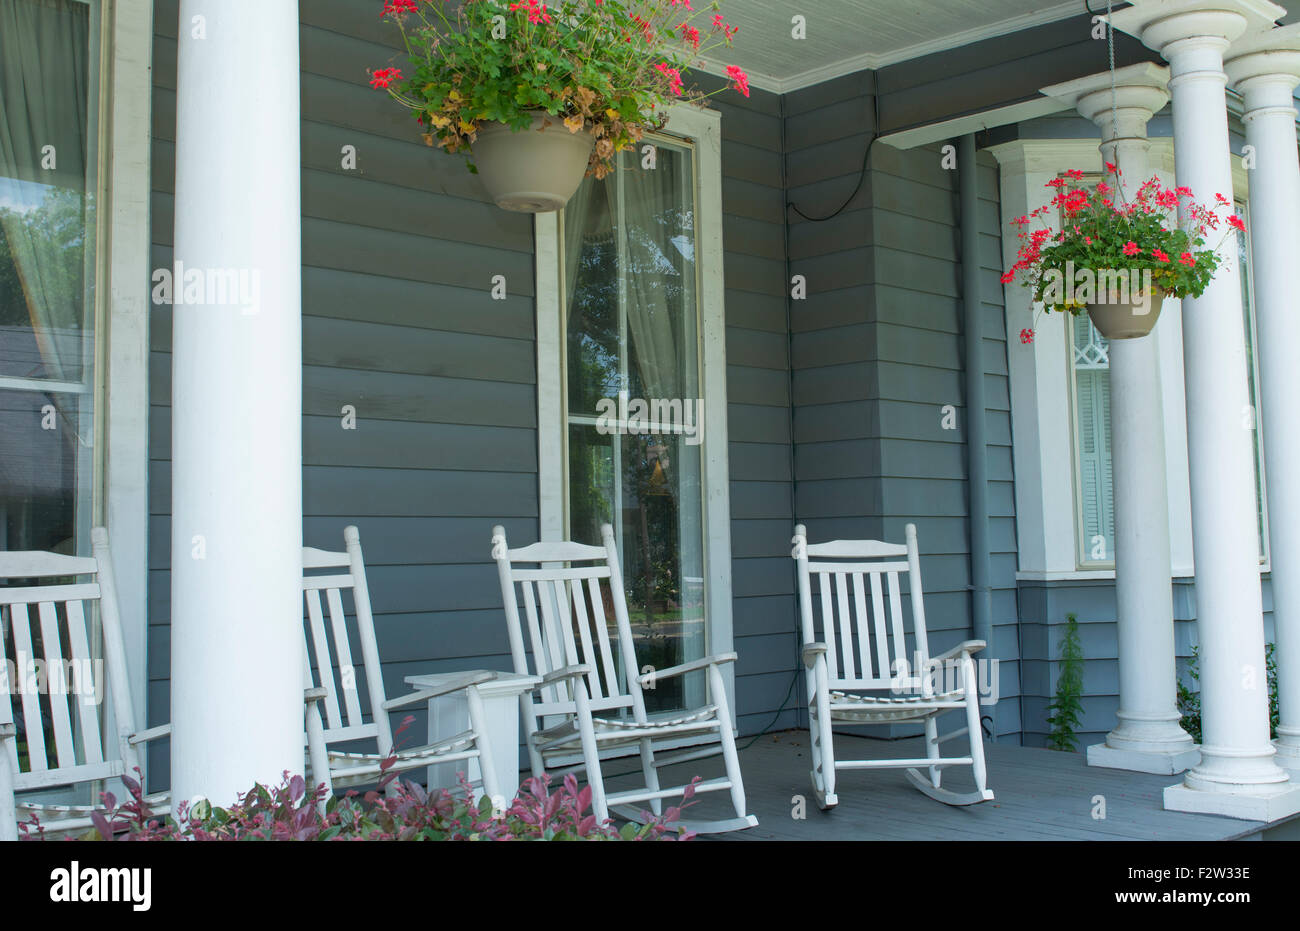 Natchitoches Louisiana porch with rocking chairs in Victorian home at Sweet Cane Inn built in 1890 relaxing - Stock Image